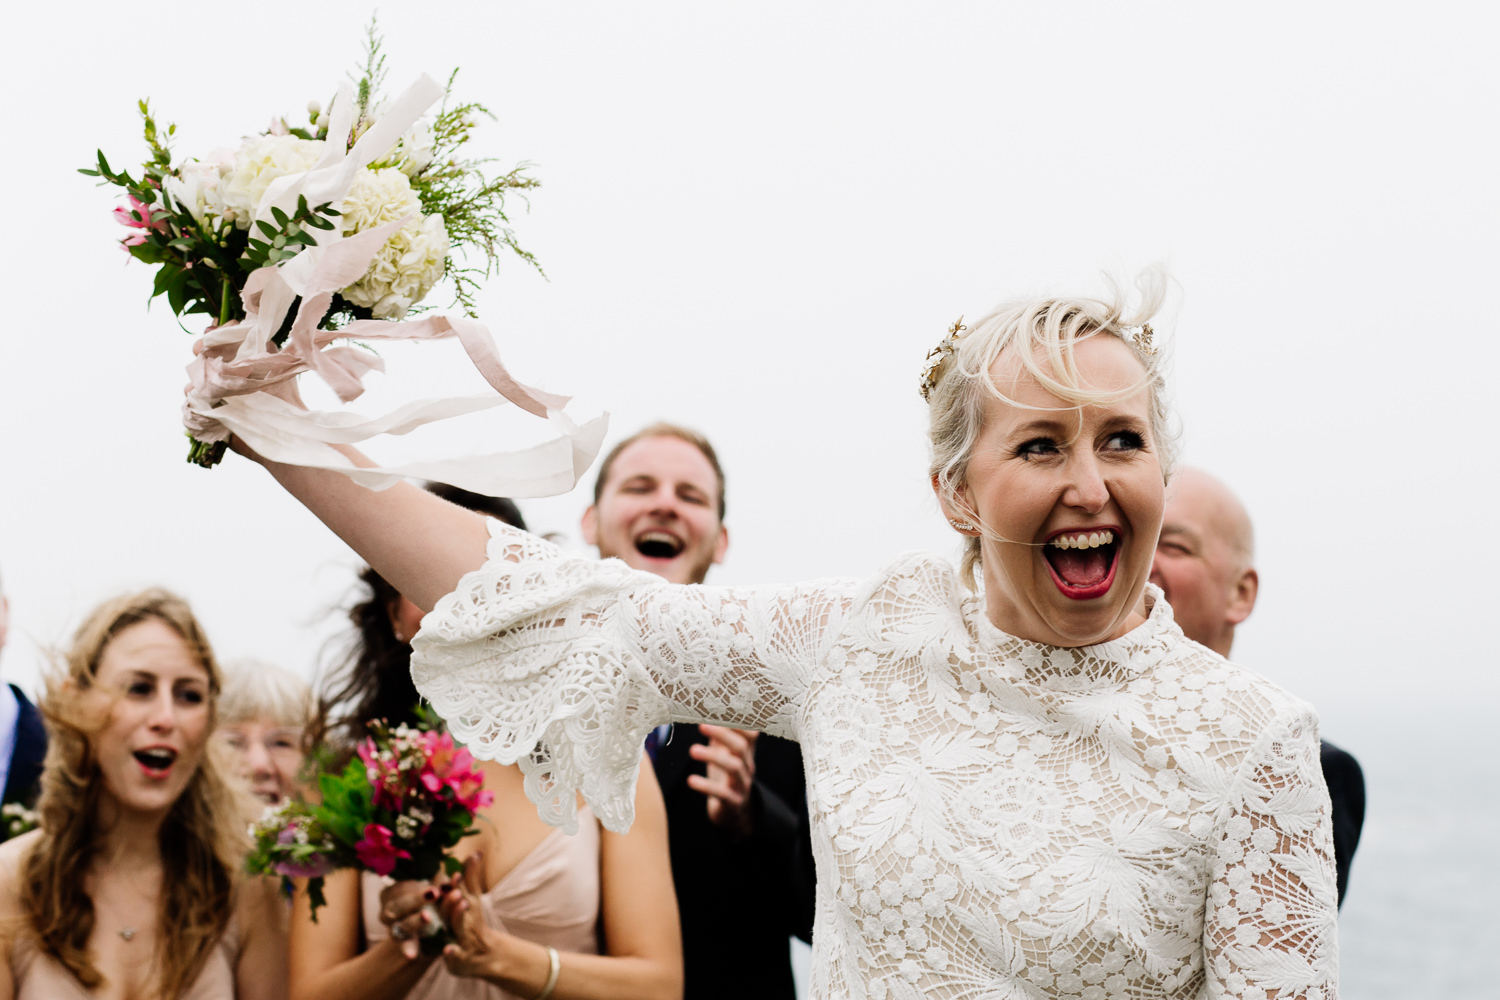 A bride celebrating getting married with her bouquet in the air a an outdoor ceremony in Anglesey, Wales.